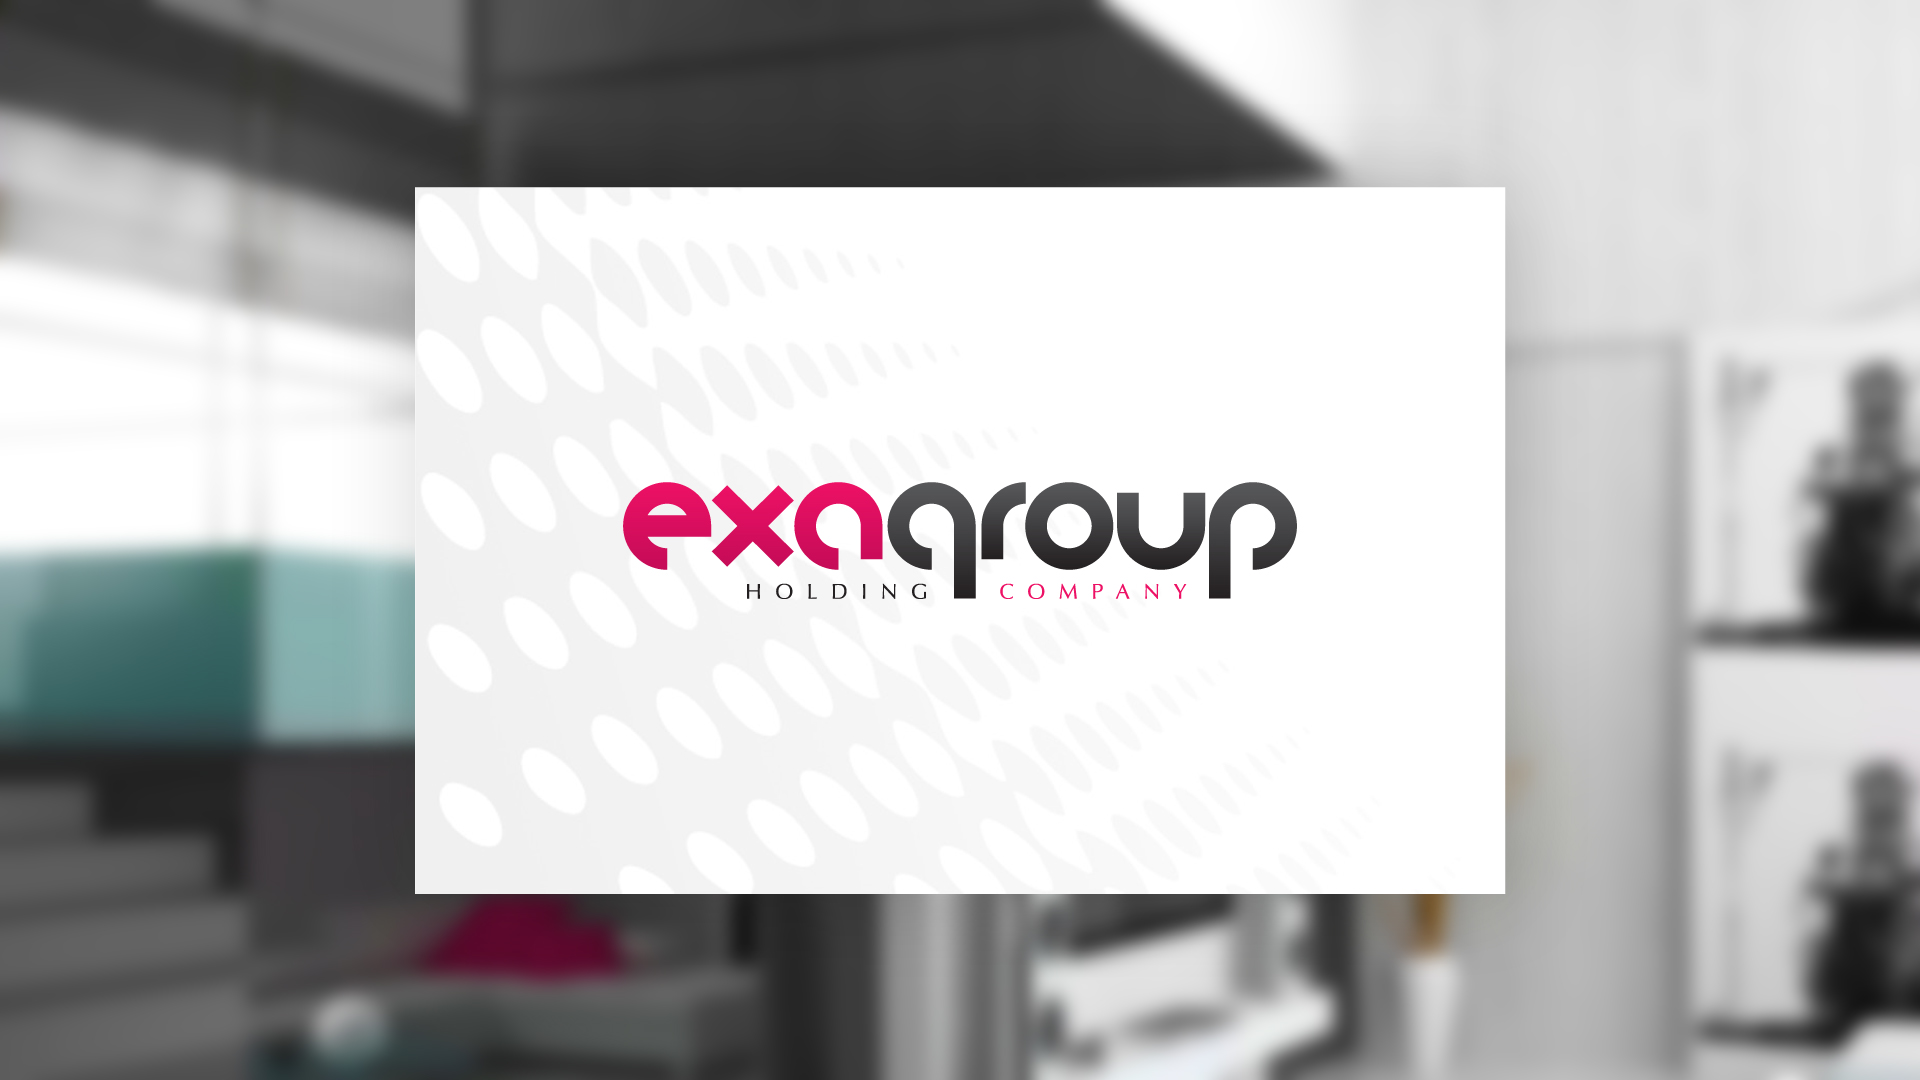 exagroup-creation-logo-identite-visuelle-logotype-carte-papier-entete-communication-caconcept-alexis-cretin-graphiste-montpellier